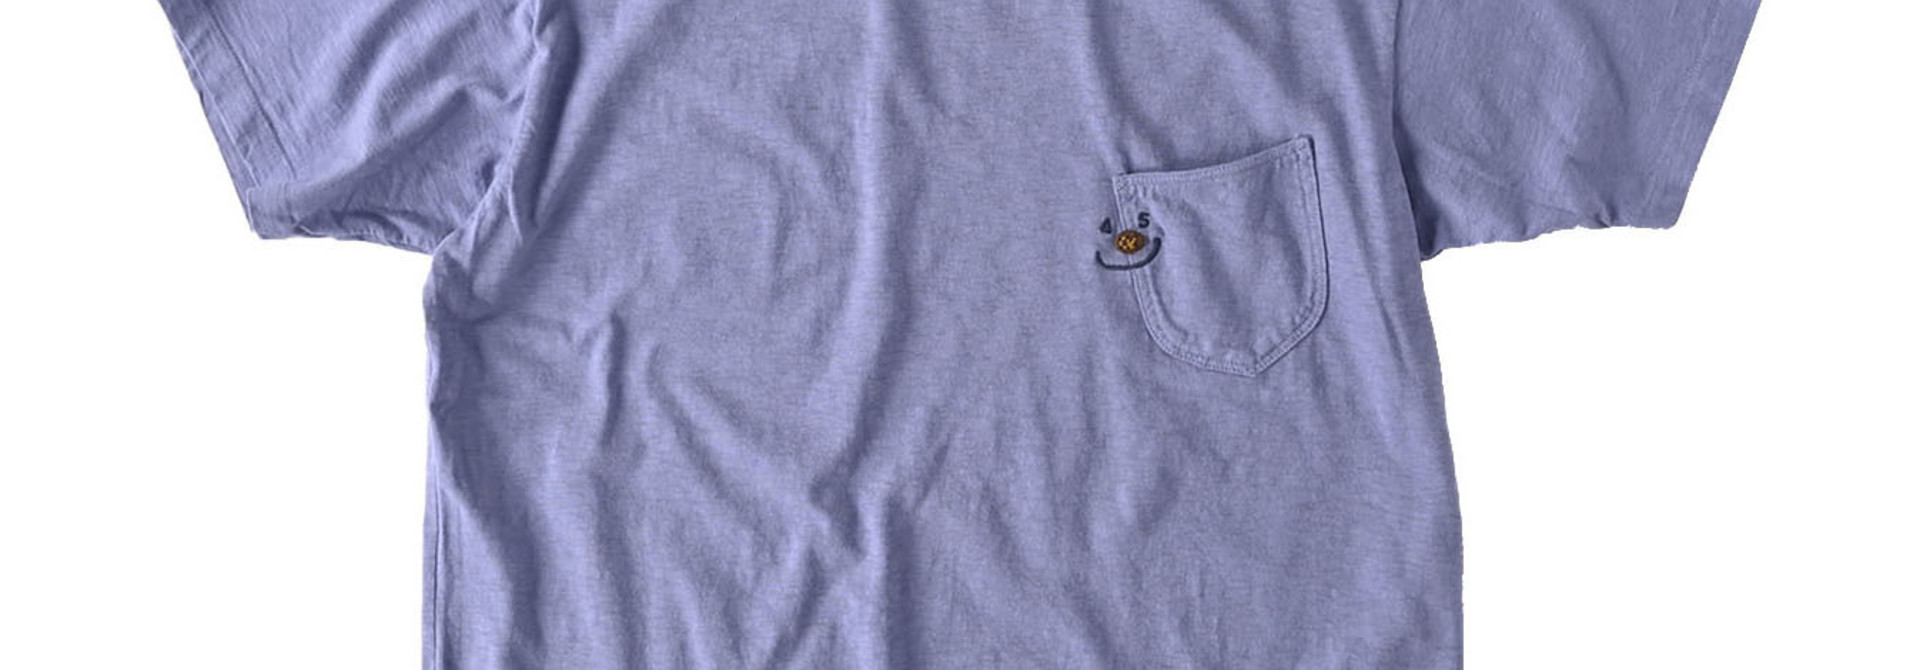 Smile R Embroidery 908 Ocean T-shirt (0621)